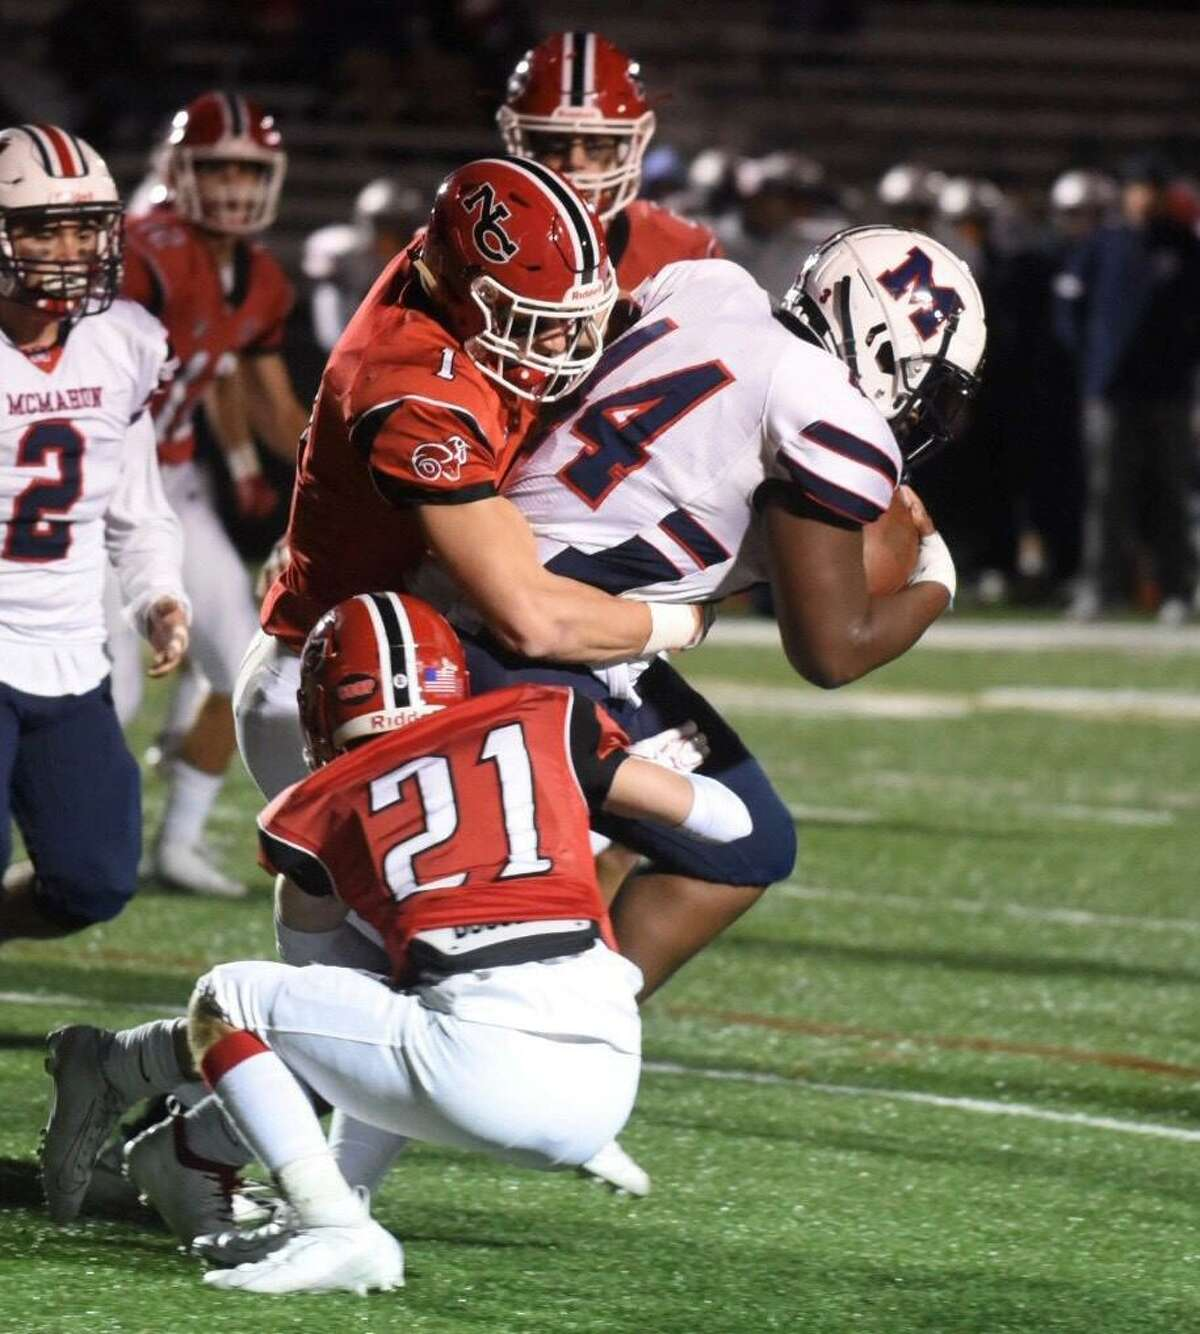 Brien McMahon's Jermayne Daniel (44) is wrapped up by New Canaan's Chris Carratu (1) and Dean Ciancio (21) during a football game at Dunning Field in New Canaan on Friday, Nov. 1, 2019.